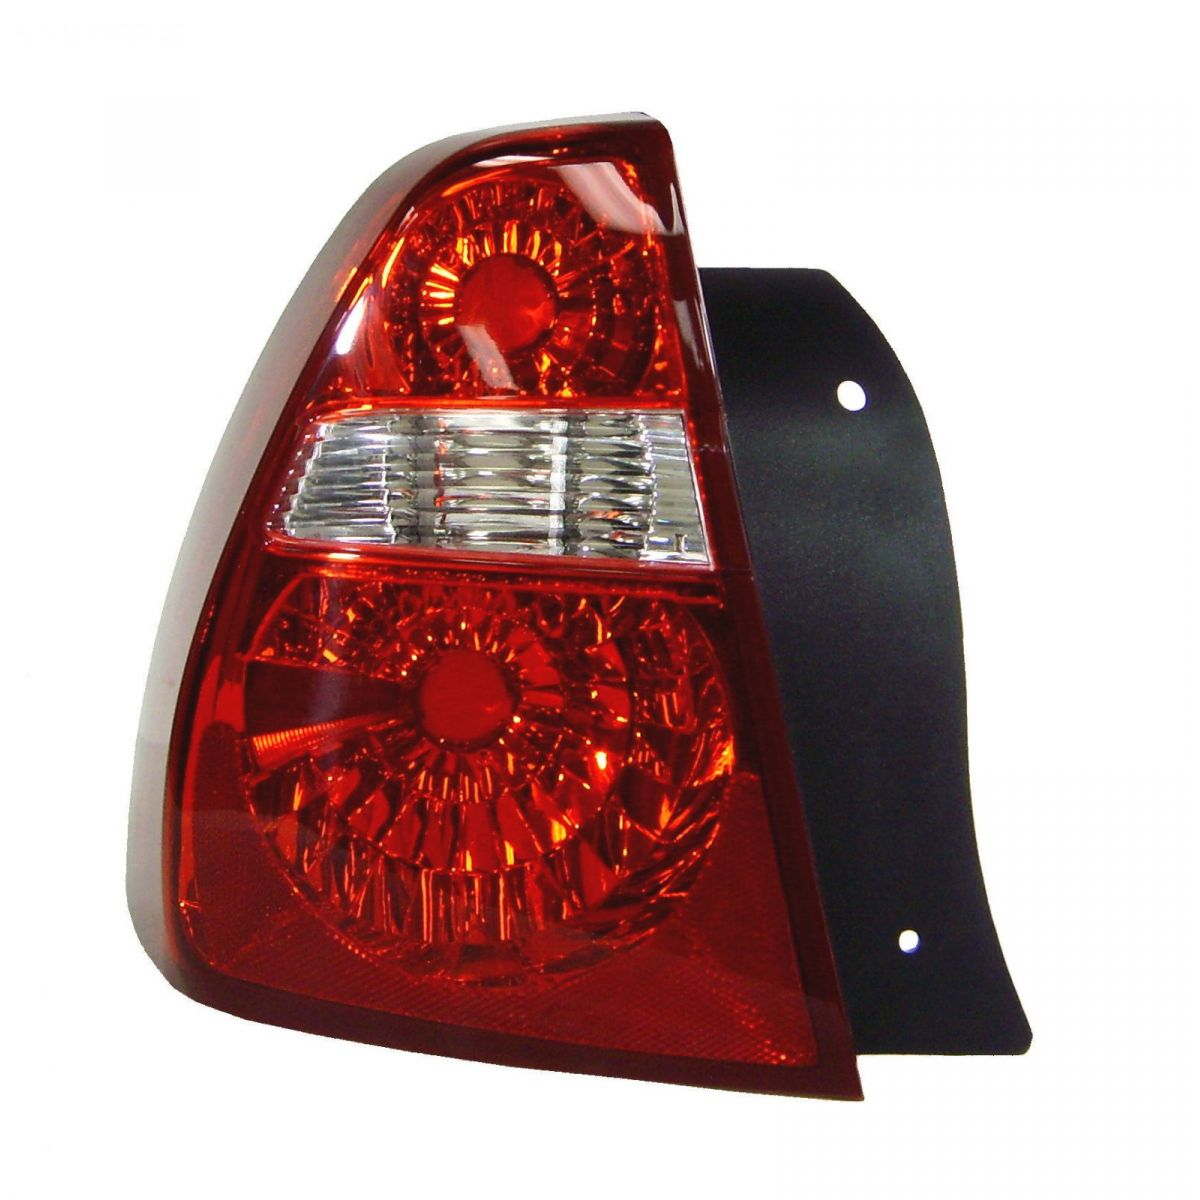 Details about Taillight Taillamp Rear Brake Light Driver Side Left LH NEW  for Malibu Sedan